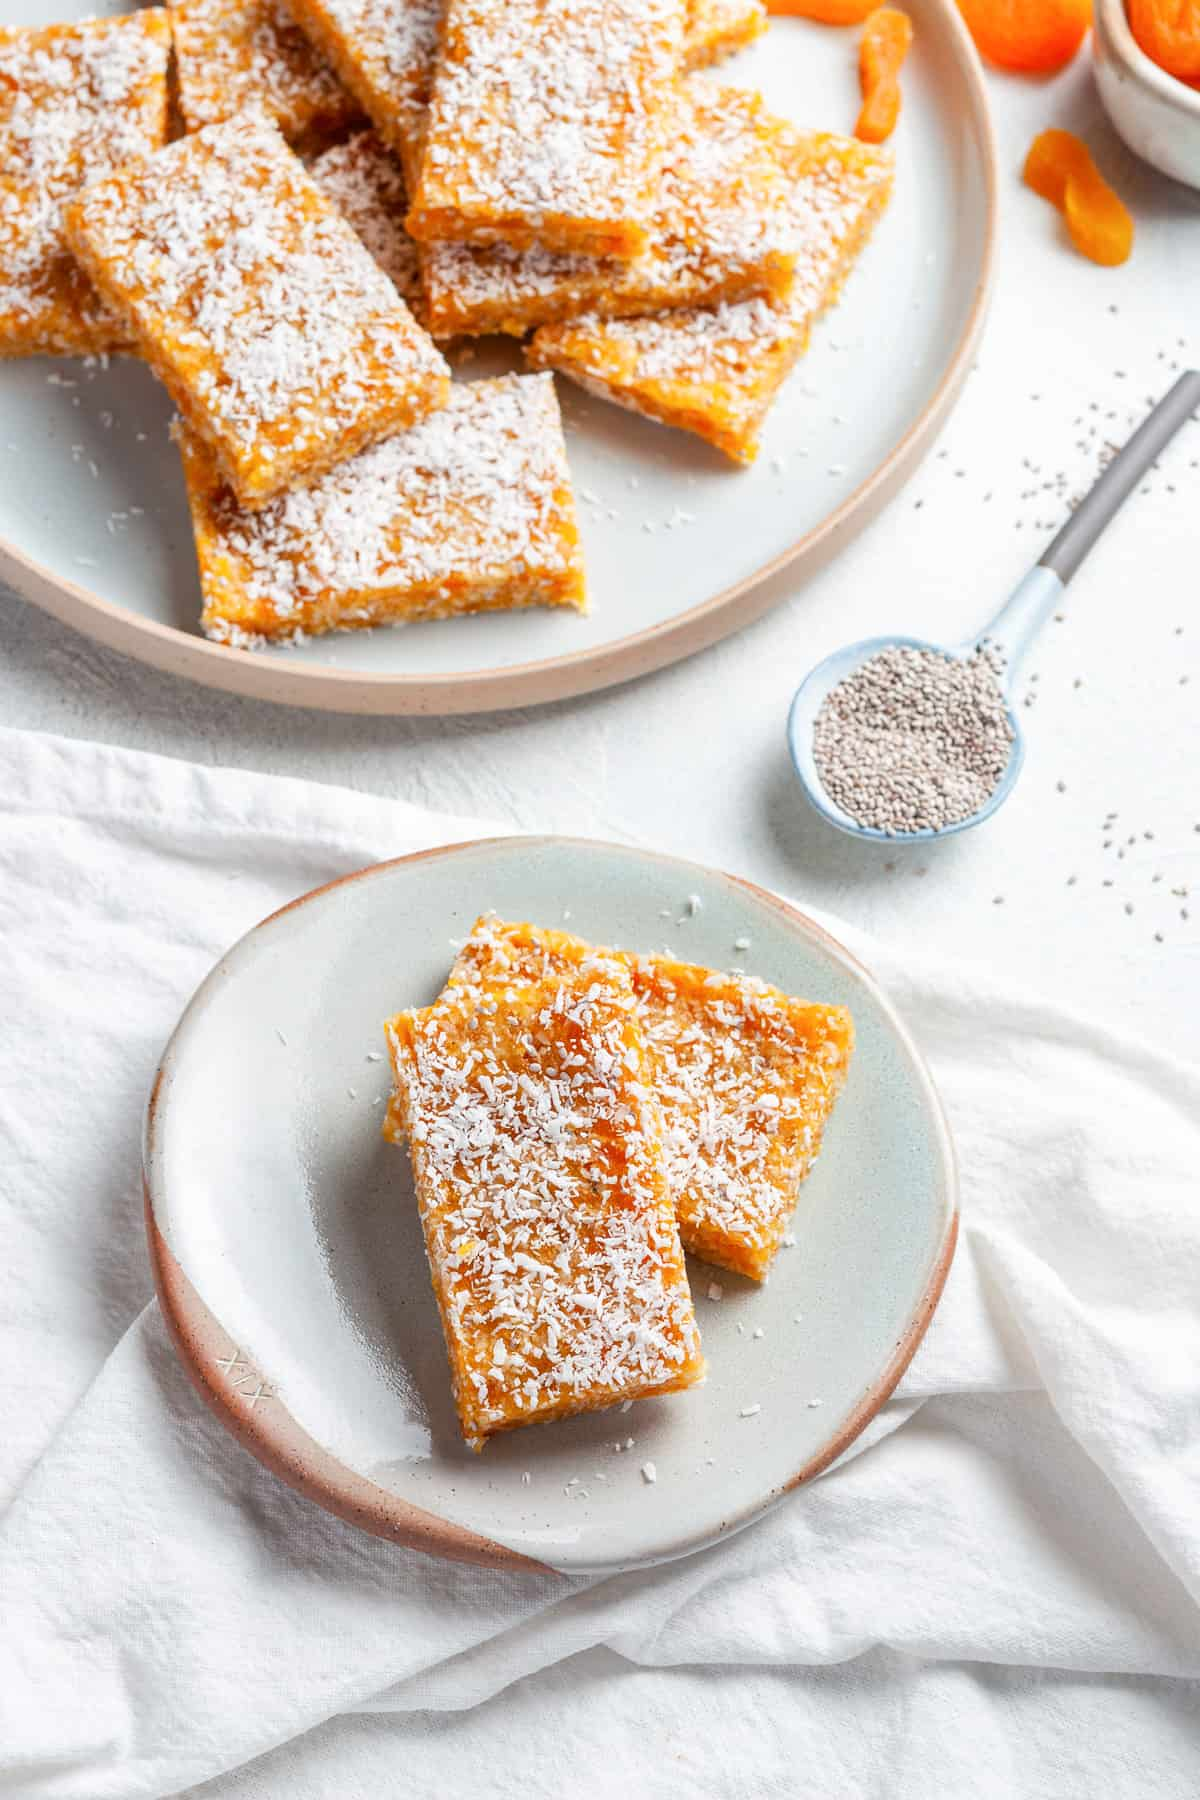 Small and large round dish of apricot bars, with a spoon of chia seeds on the side.